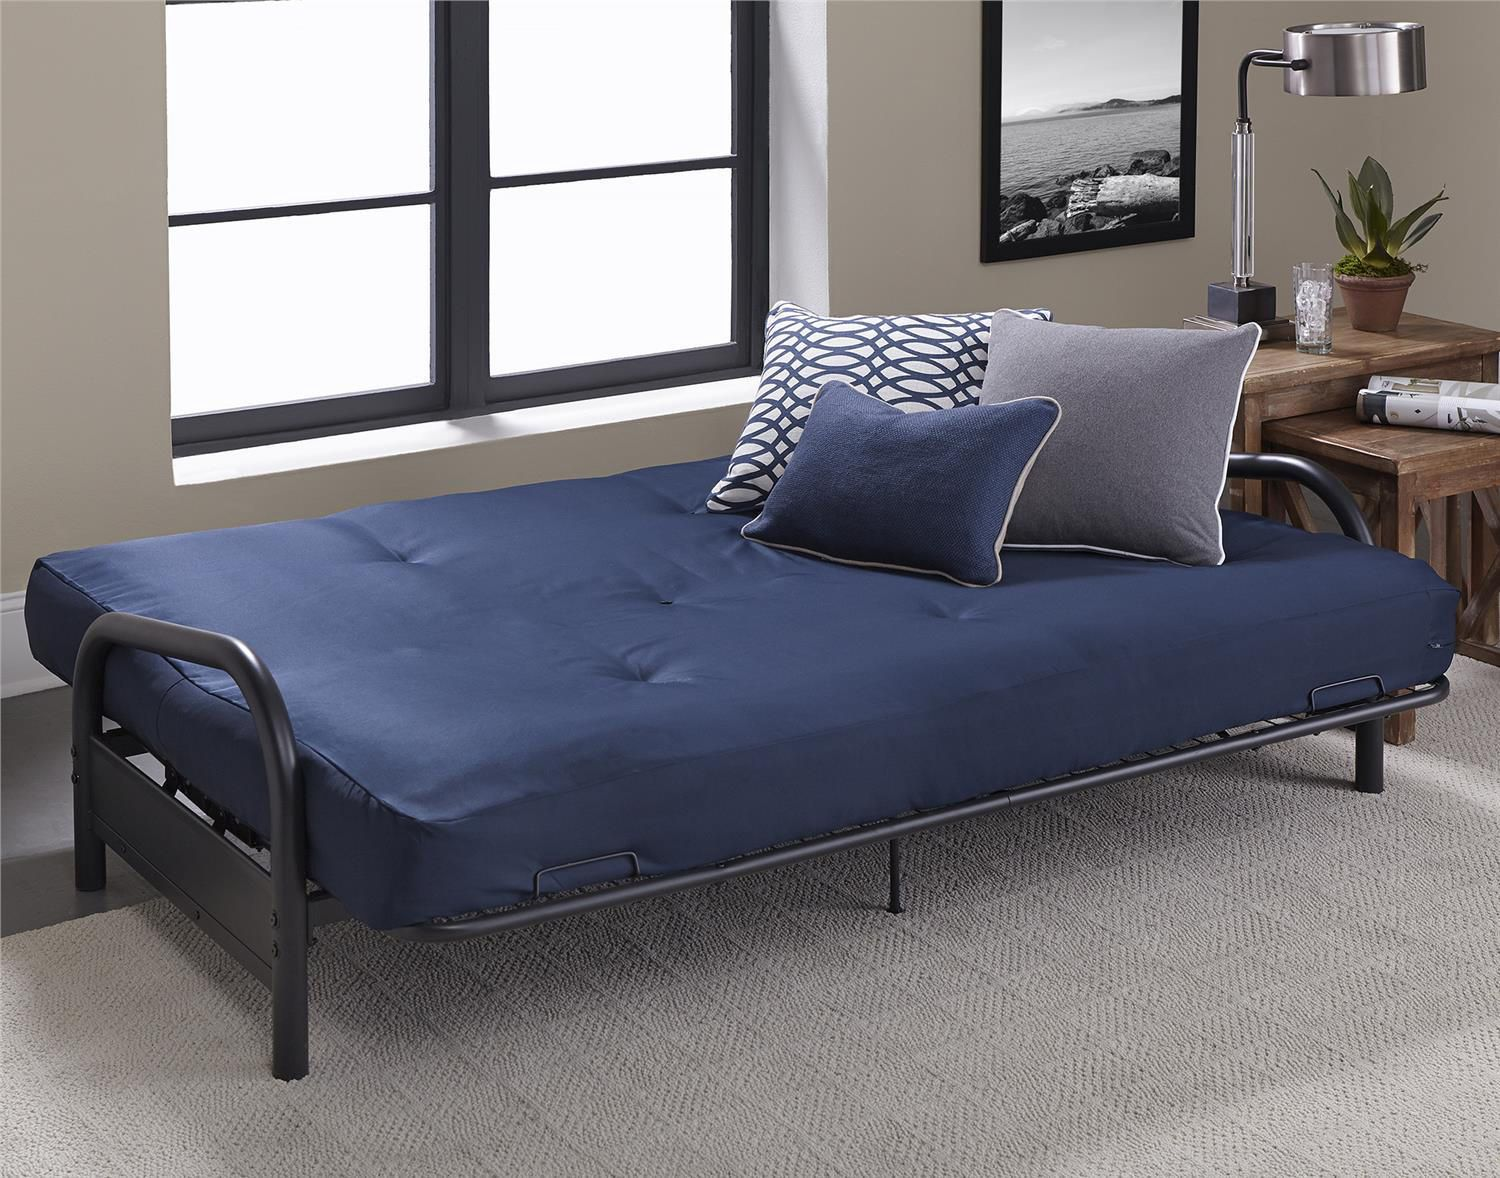 bio sleep latex on with futons design bed crafty a luxury architecture futon mattress sofa concept for best core new and topper sublime natural frame home ideas